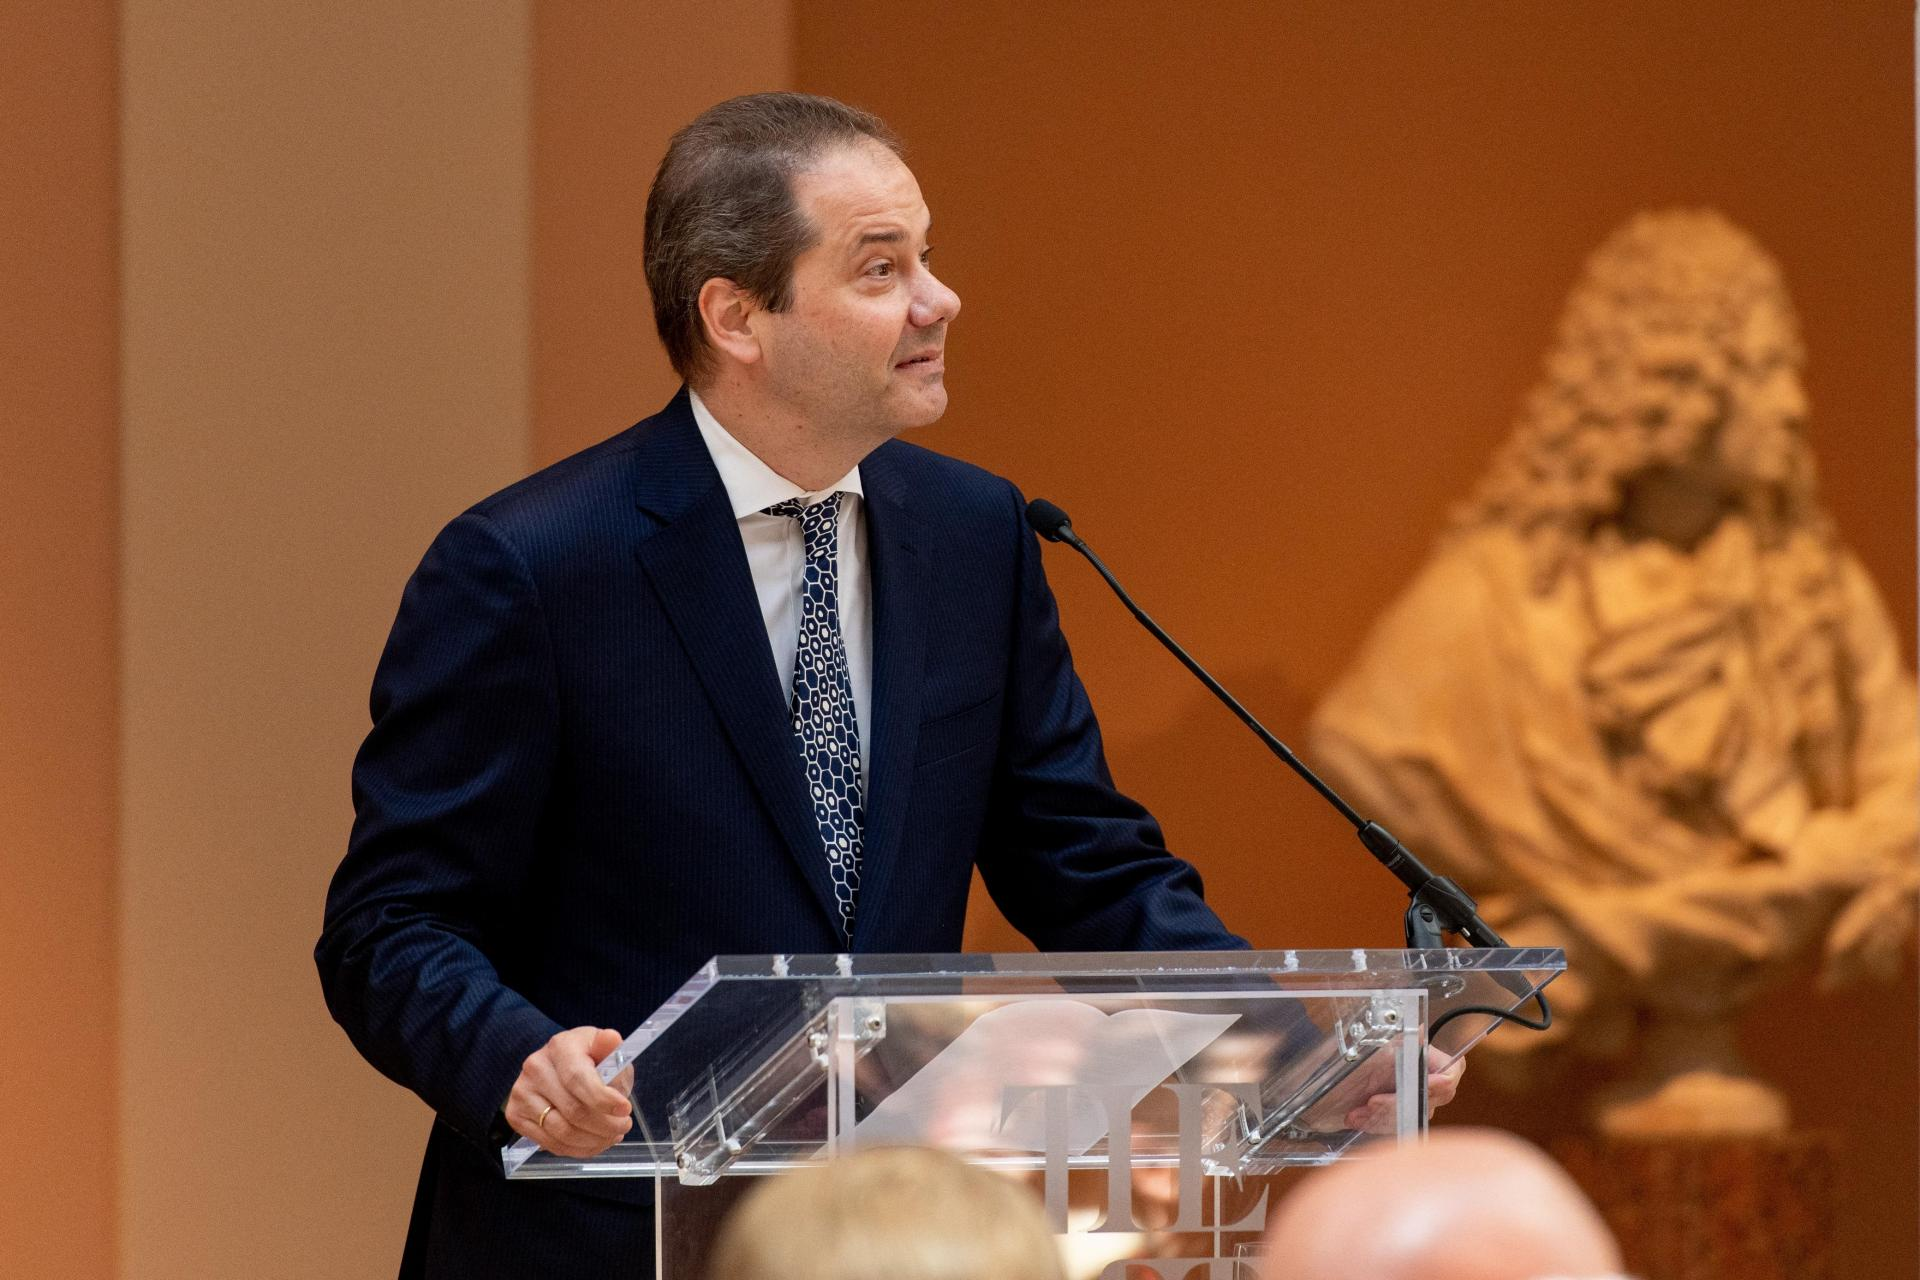 Director of the Metropolitan Museum of Art, Max Hollein. Photo: Roy Rochlin/Getty Images North America/Getty Images via AFP